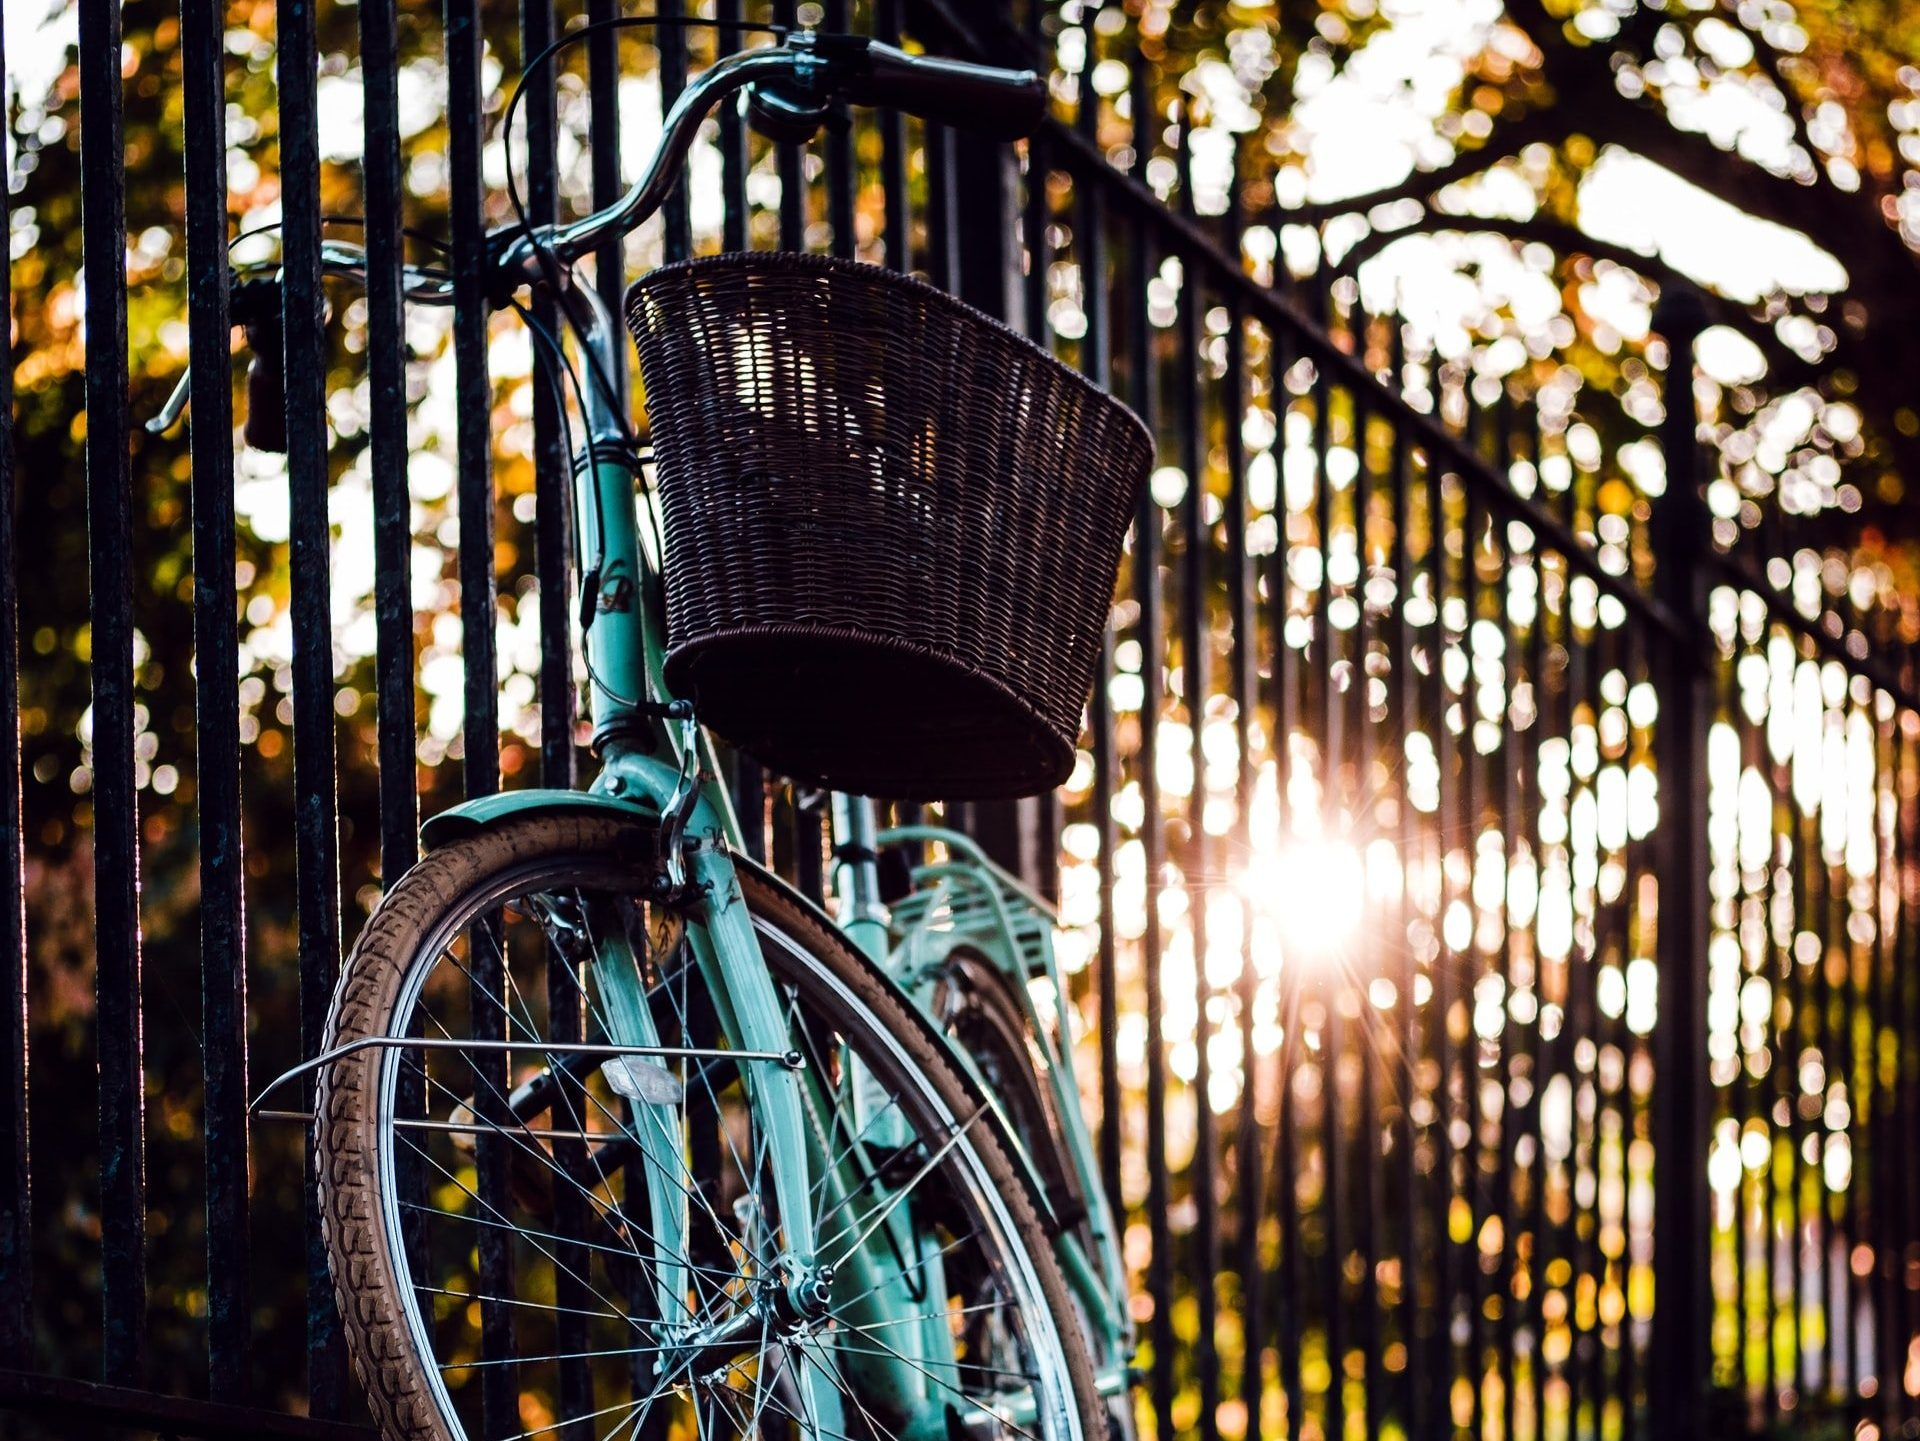 Bicycle by fence